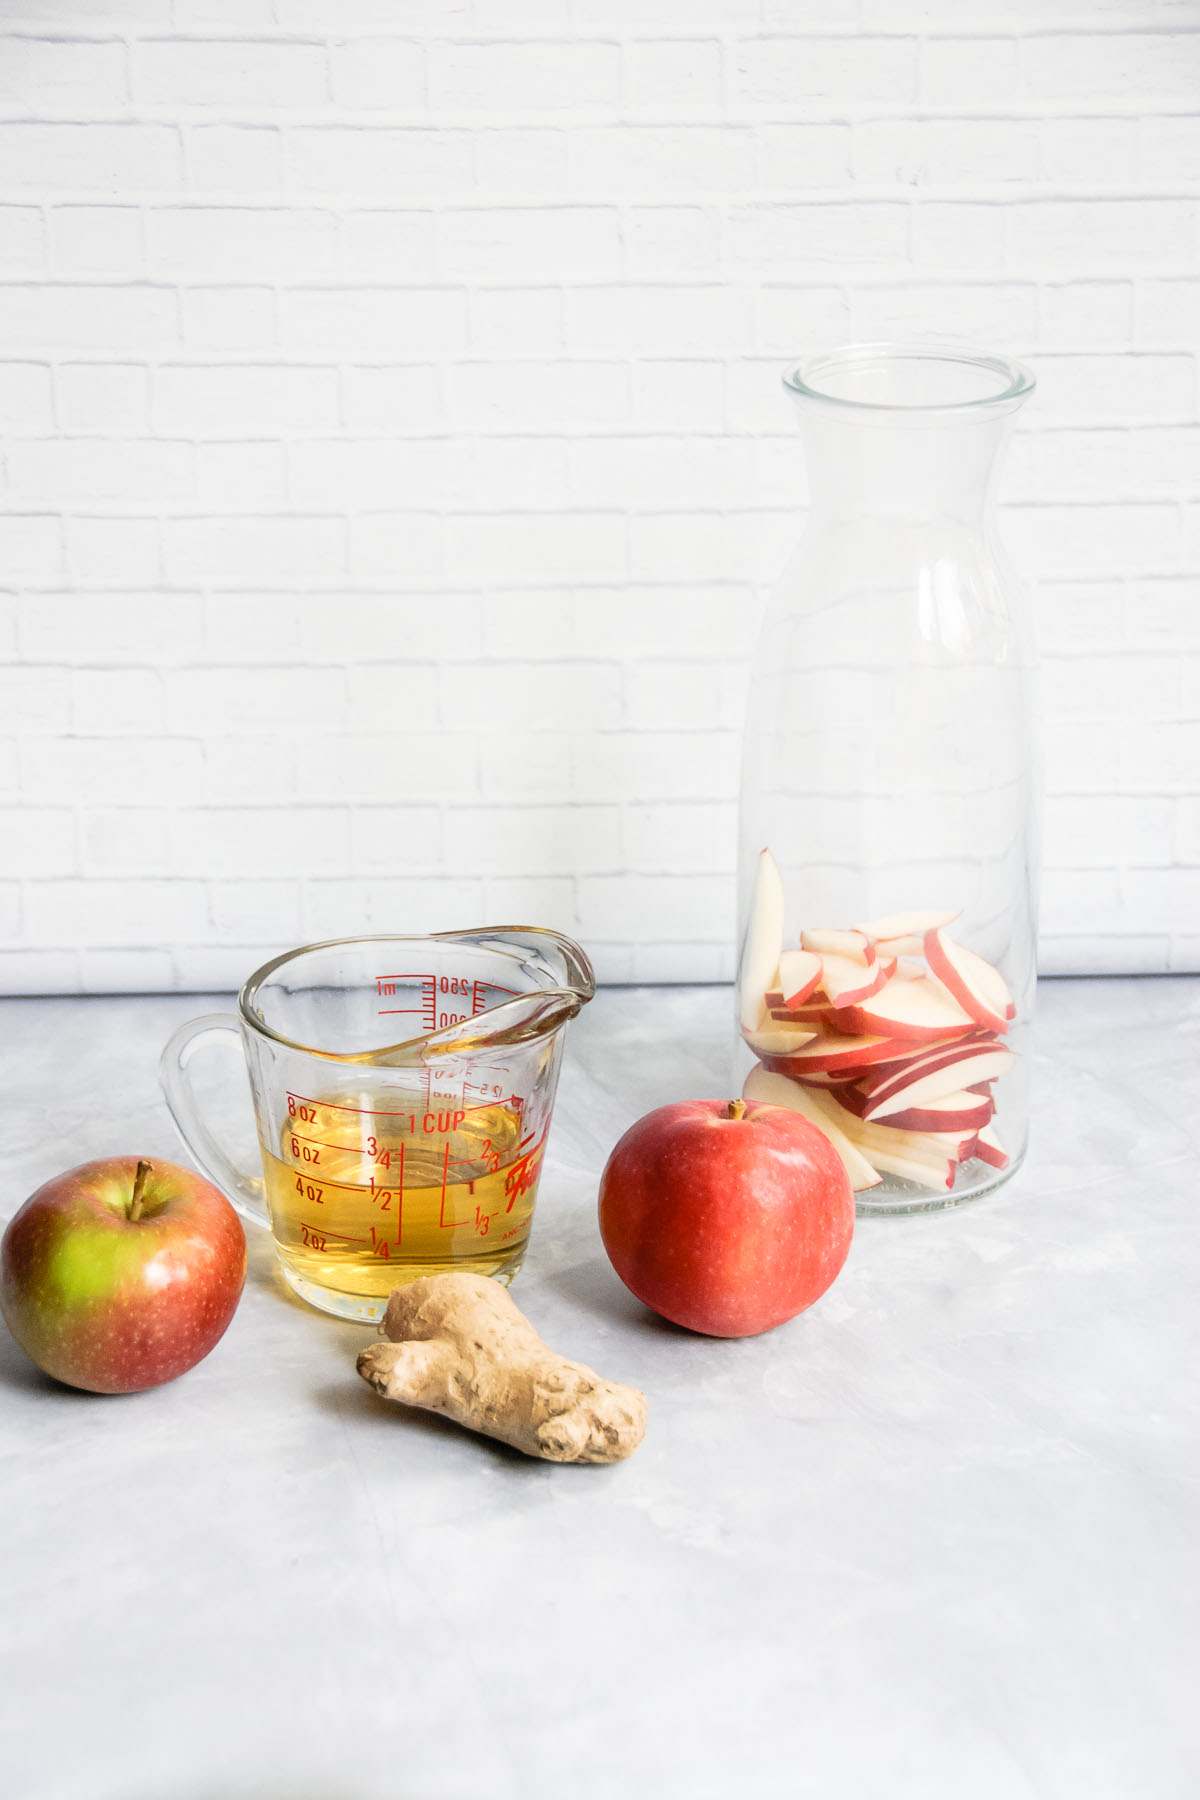 As the days get colder and the days get shorter, snuggle up in something cozy and warm your insides with this Spiced Apple Cider. Flavored with cinnamon, ginger, cloves, nutmeg and orange, it's perfect to sip now and all the way to the spring! - thebeaderchef.com #applecider #spicedcider #cider #falldrink #fall #autumn #thanksgivingdrink #thanksgiving